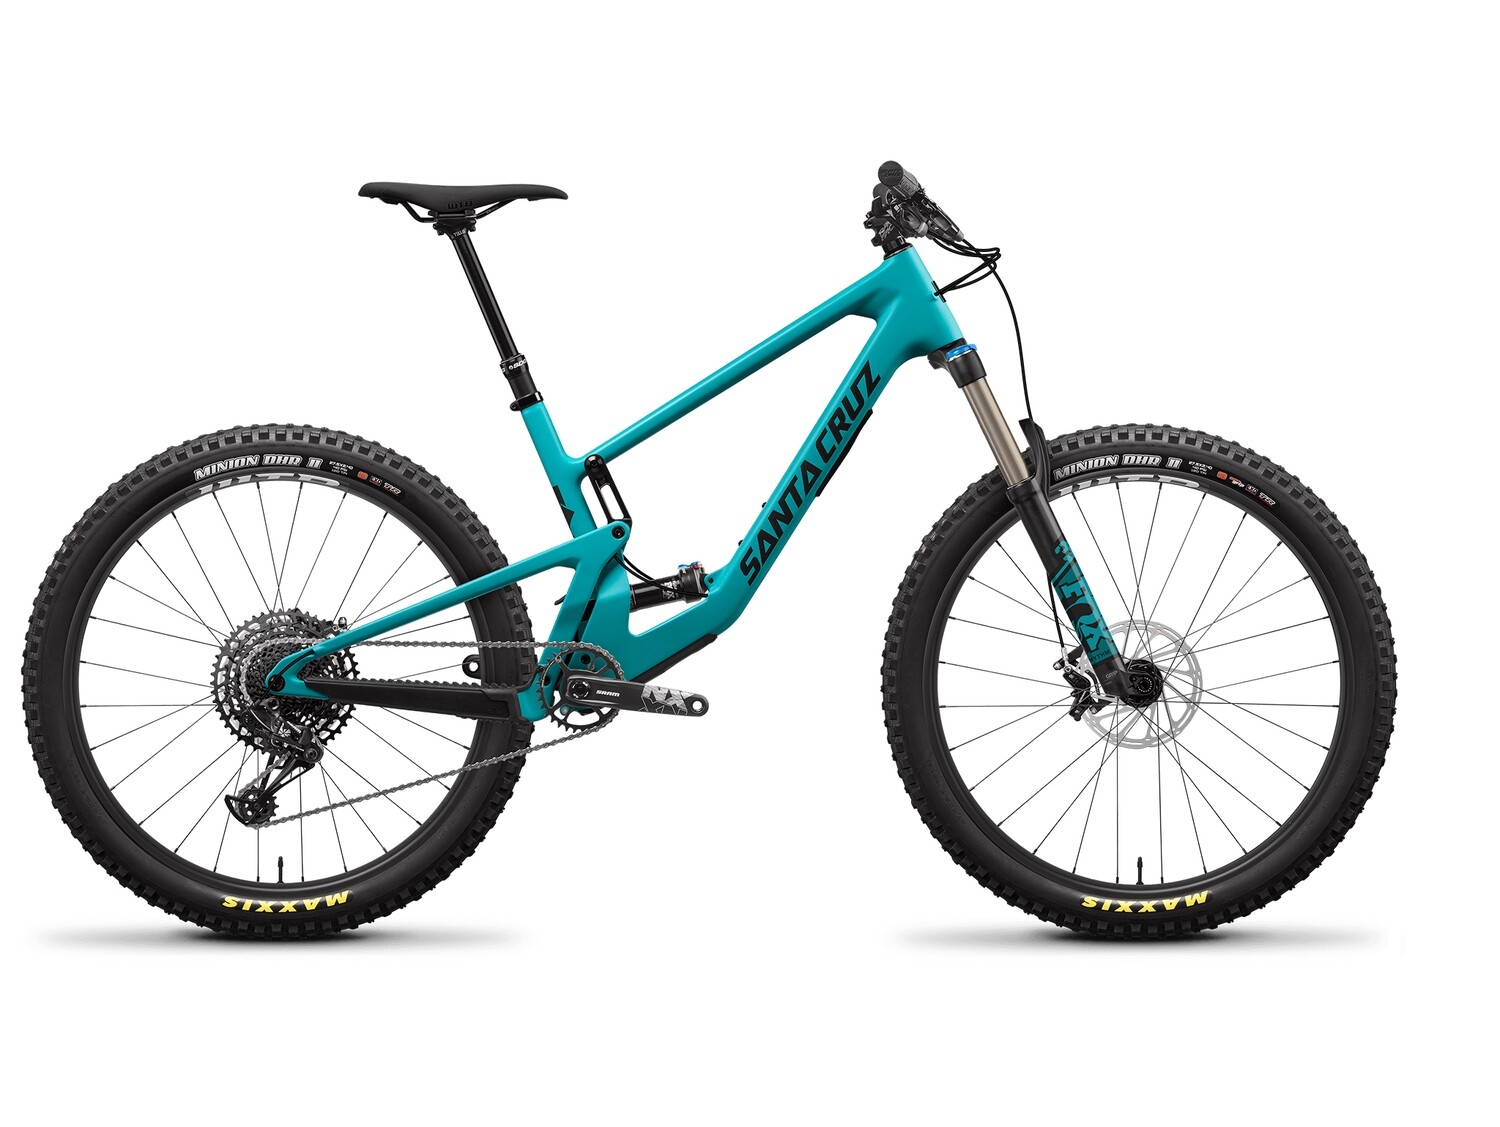 SantaCruz 5010 S-kit Small